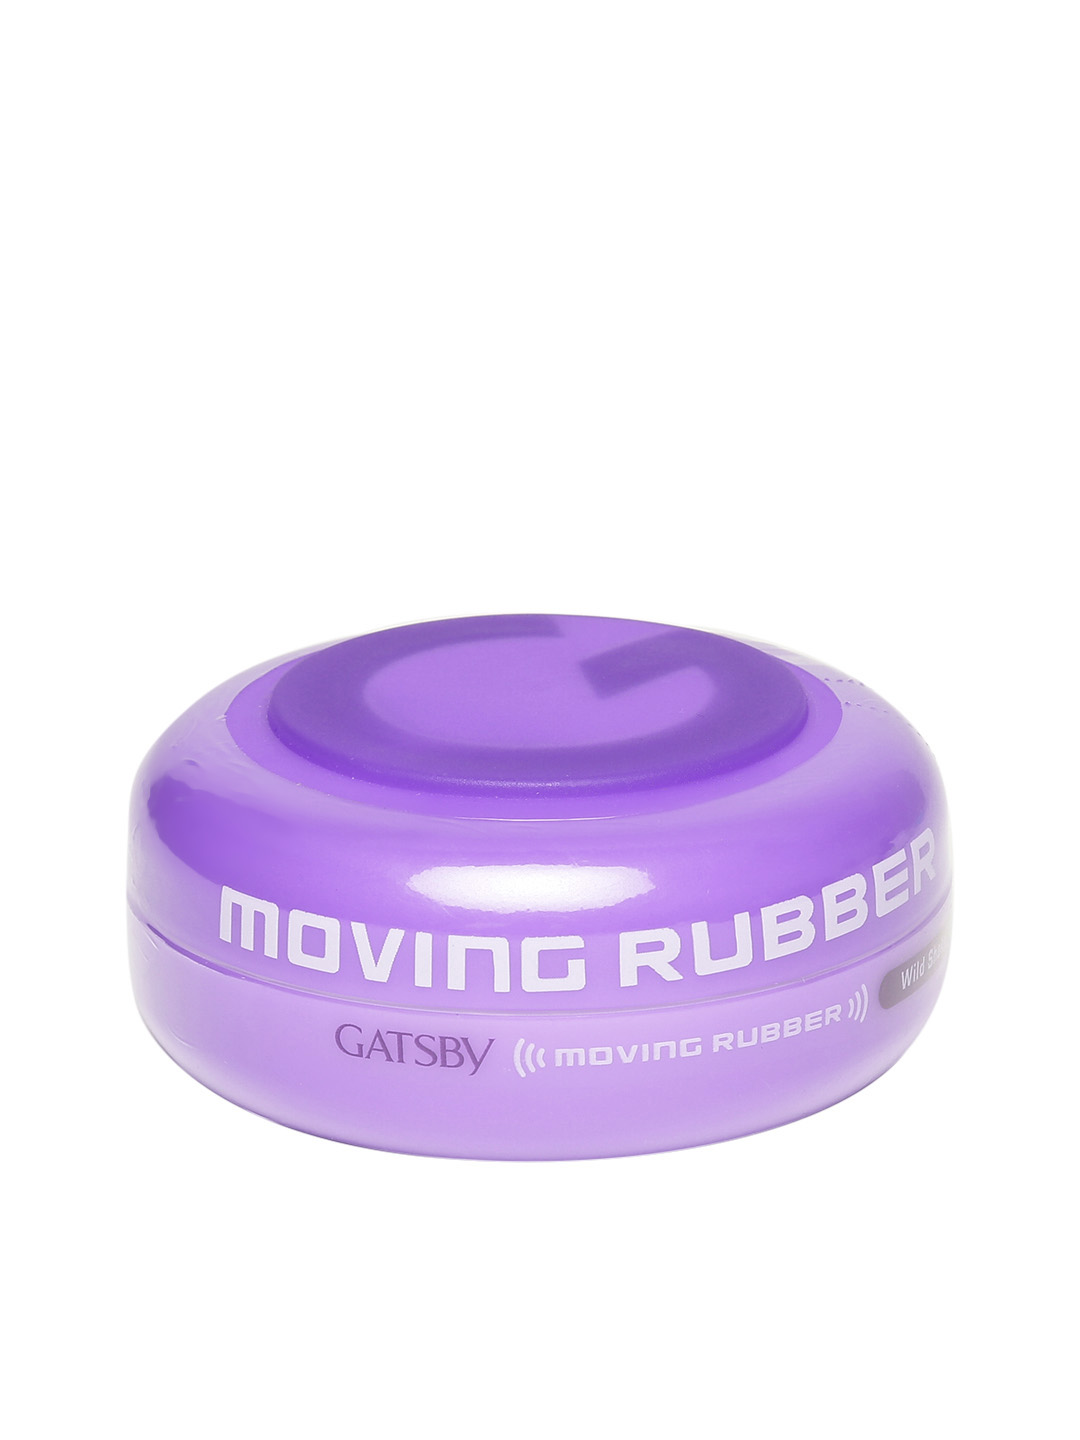 Gatsby Men Moving Rubber Wild Shake H Hair Wax Image